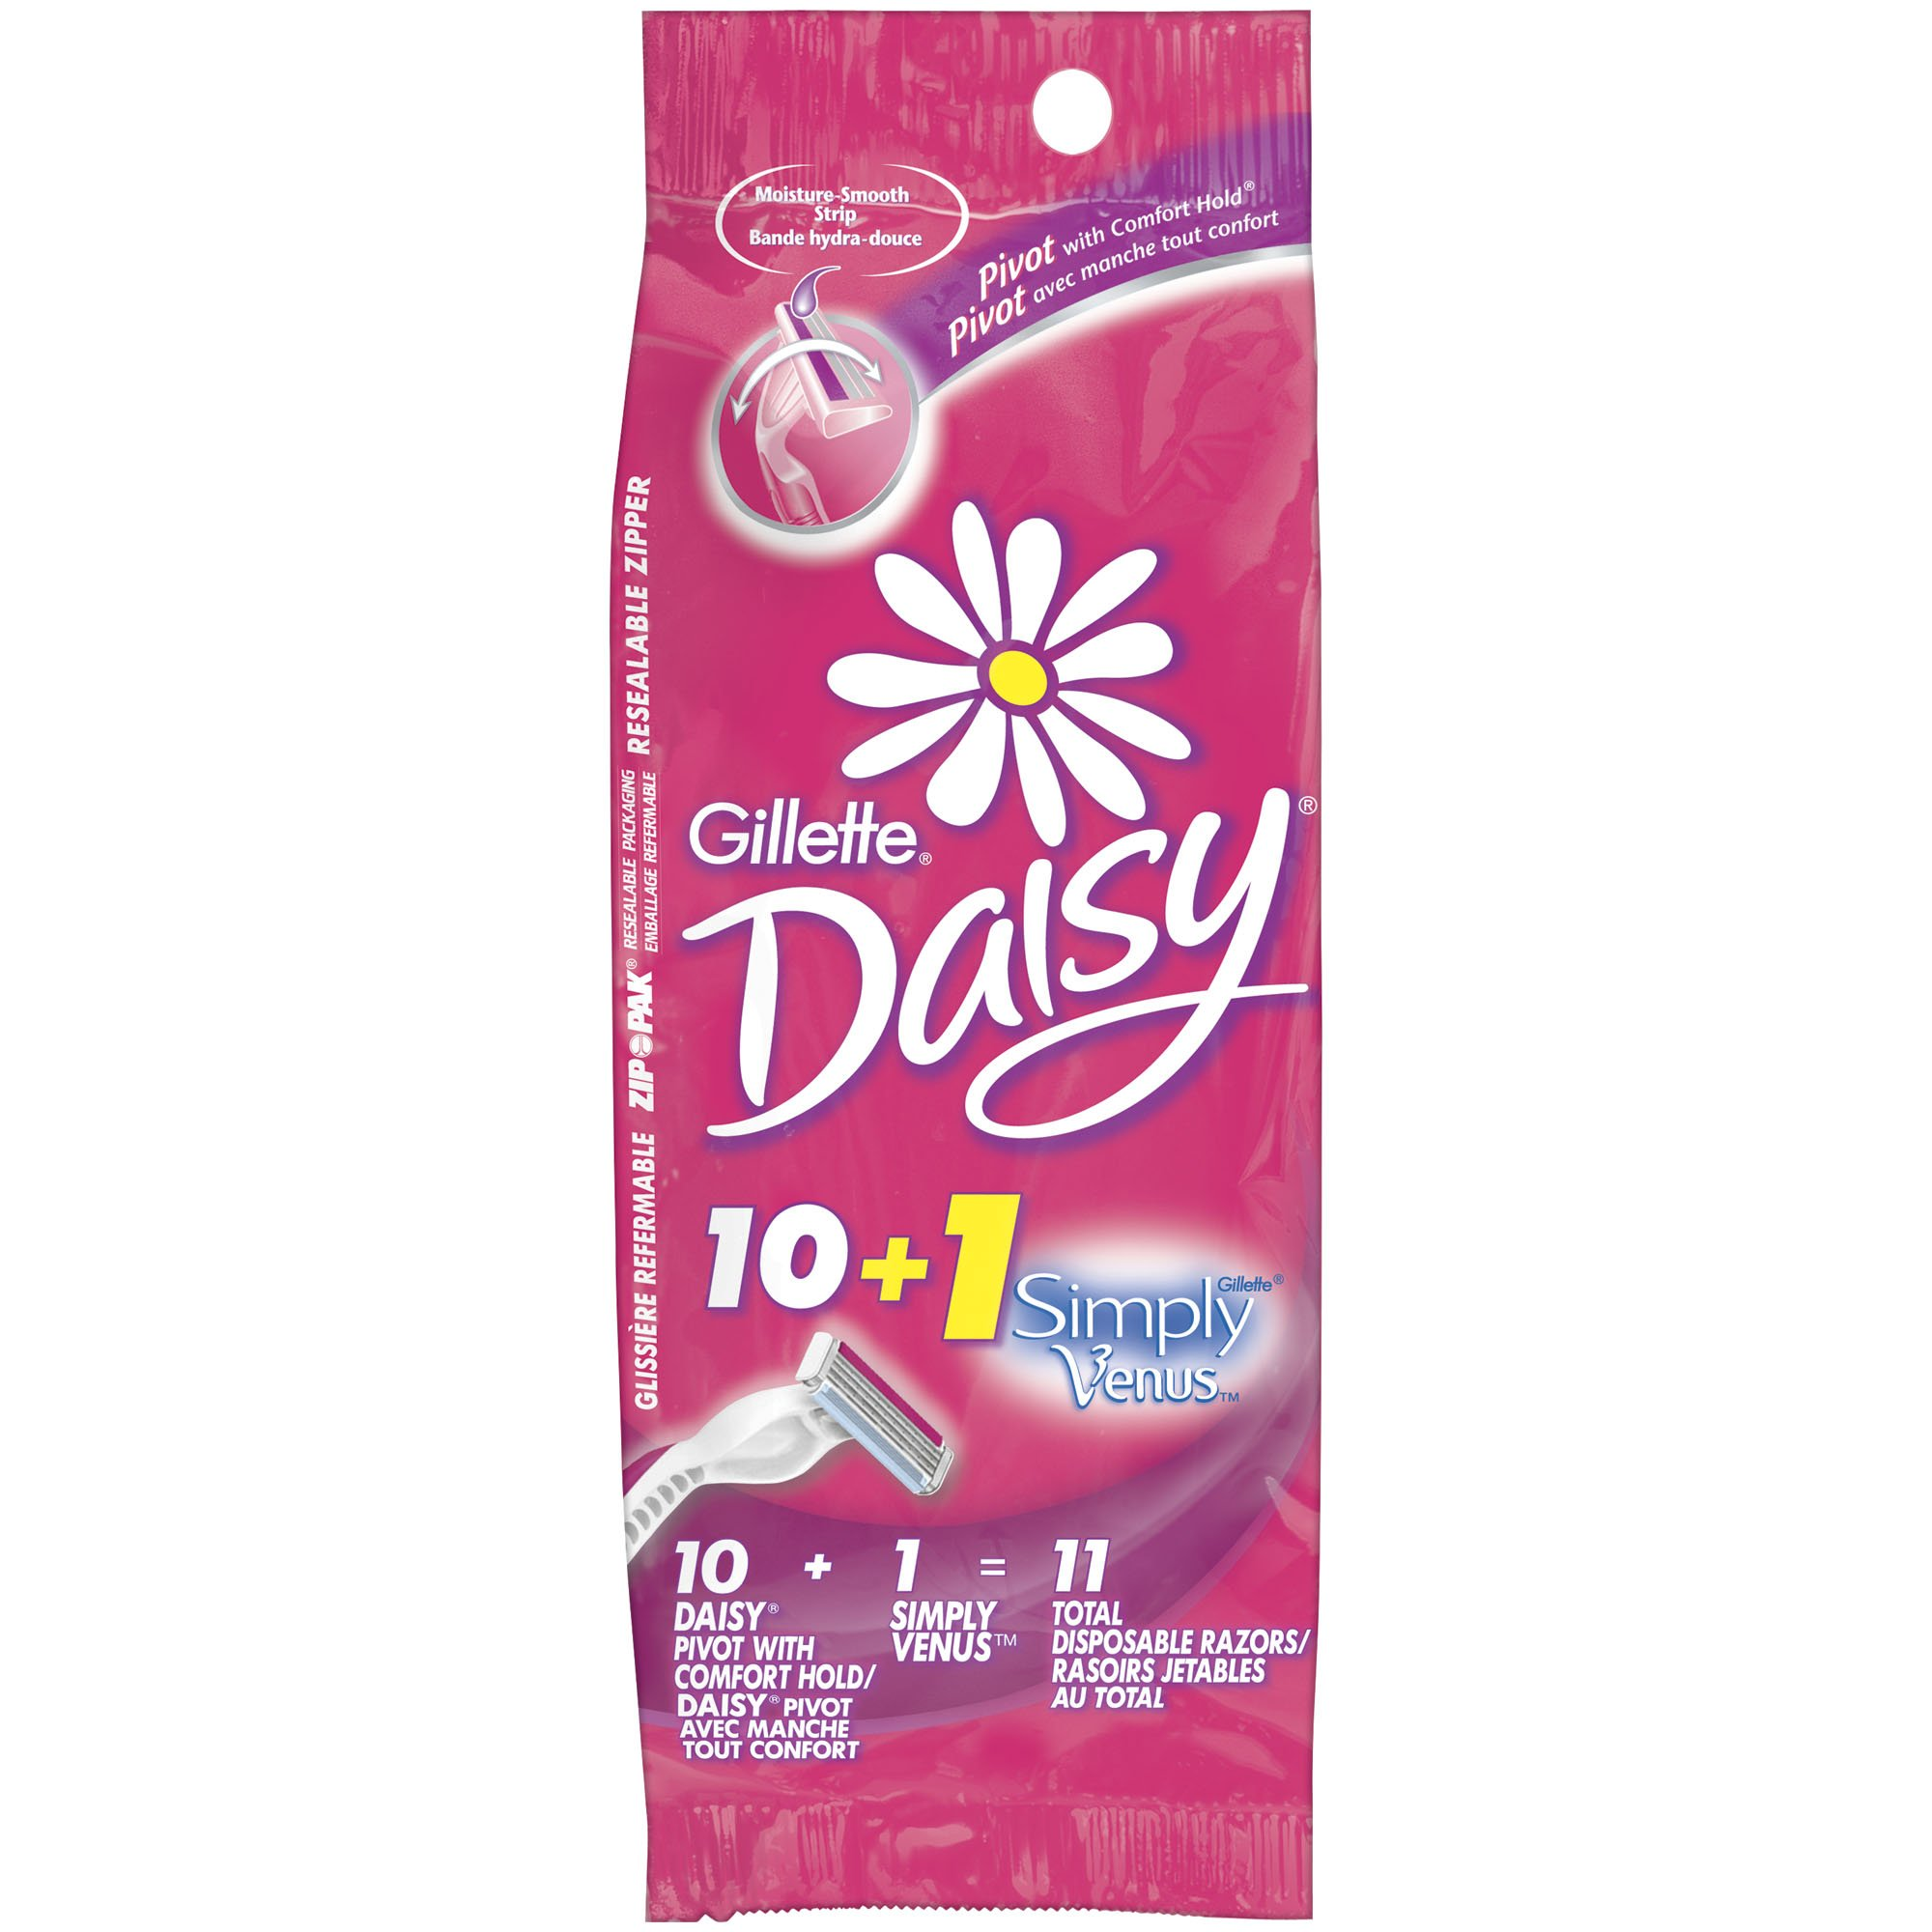 Gillette Daisy Women's Disposable Razor, 10 Count, Womens Razors / Blades